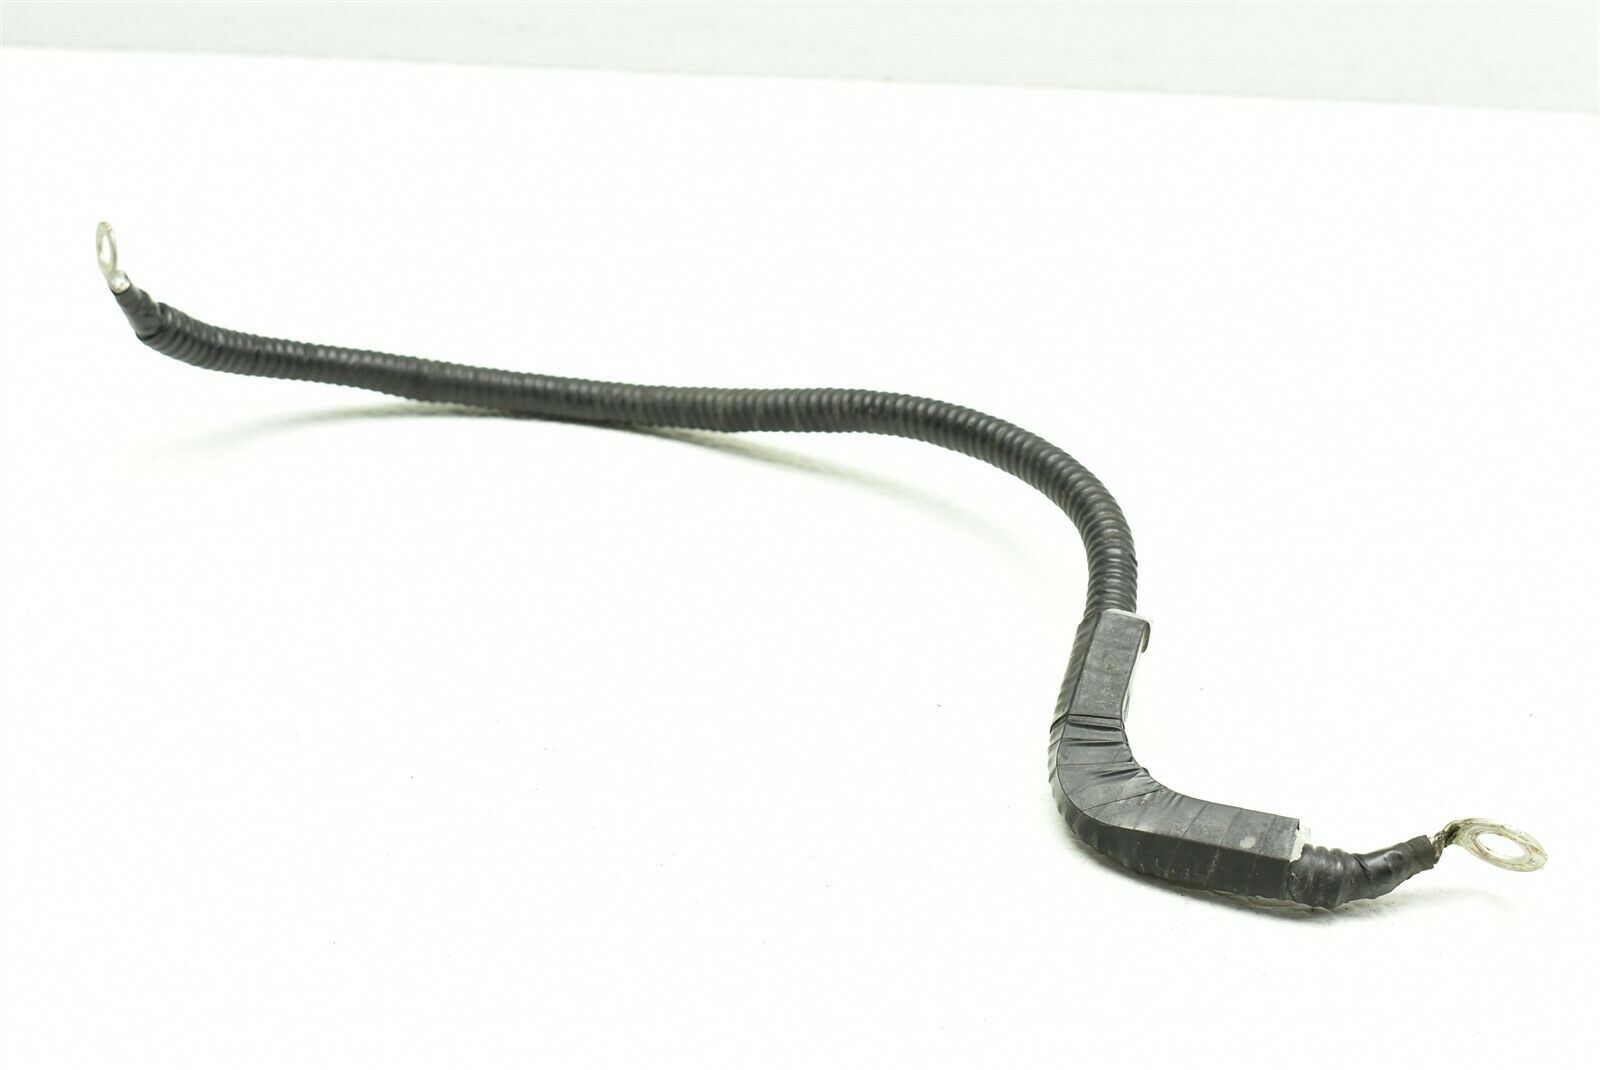 Subaru Wrx Engine Fuse Box Ground Cable 02 05